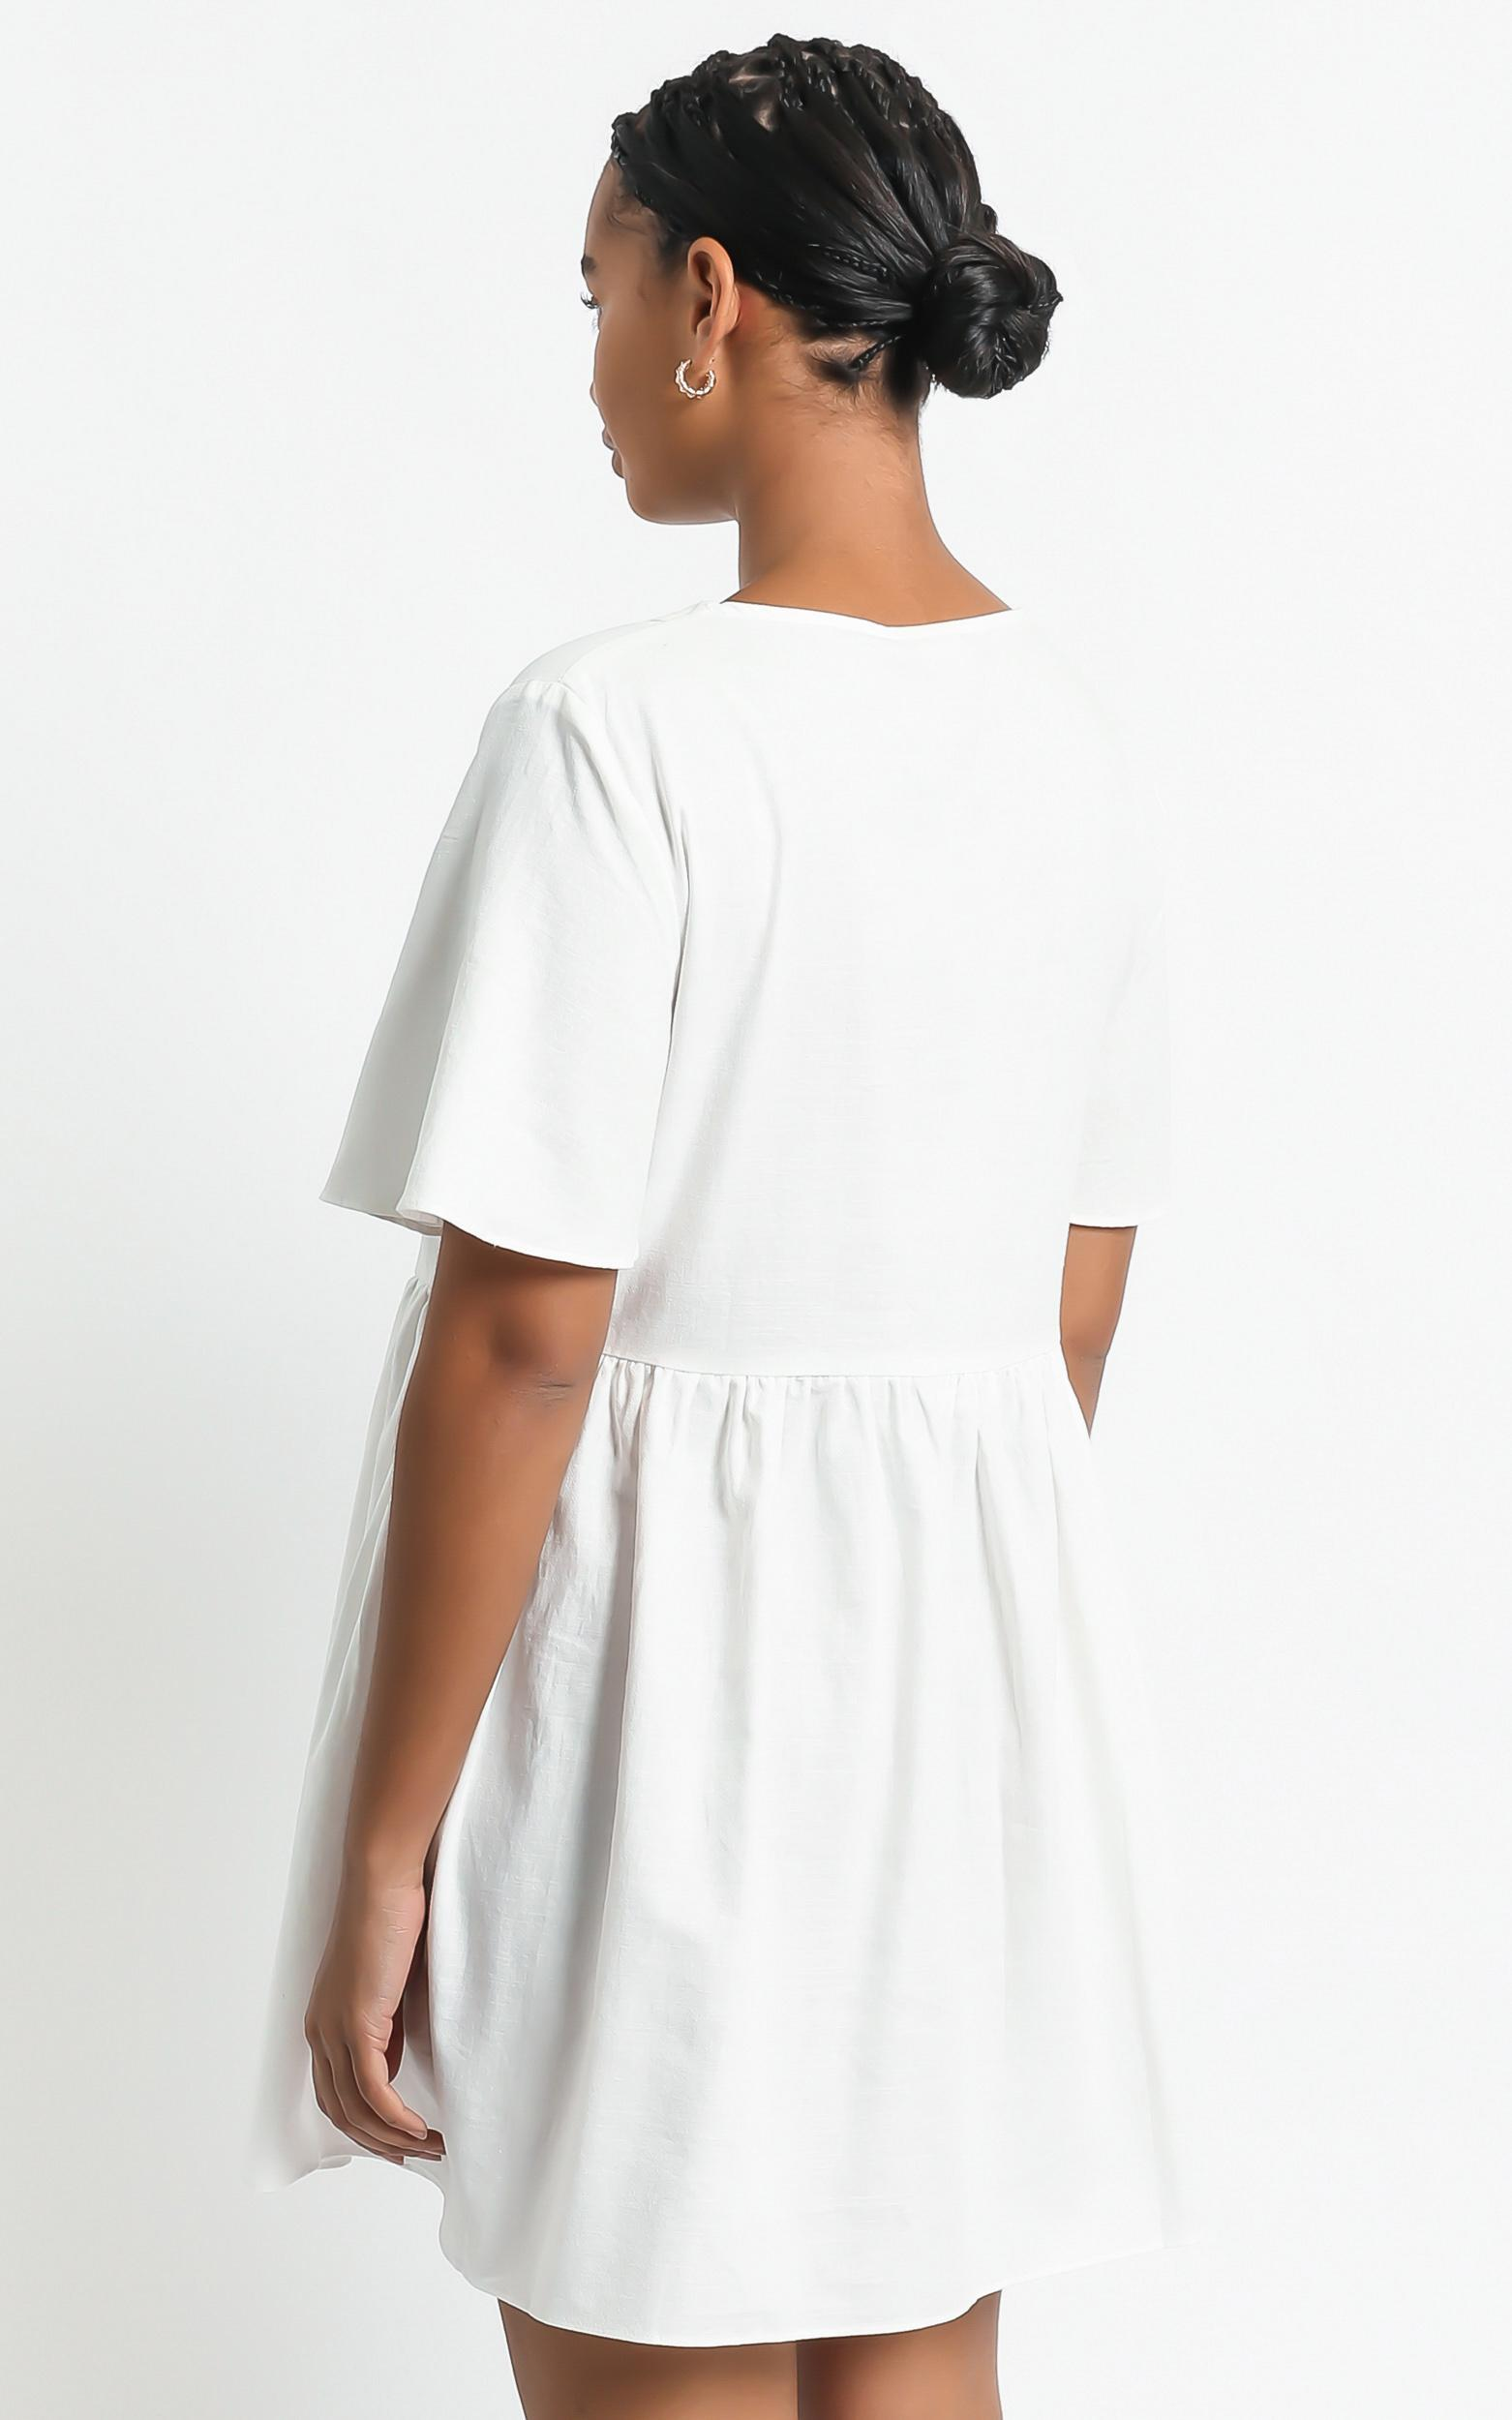 Staycation Dress in White - 4 (XXS), White, hi-res image number null